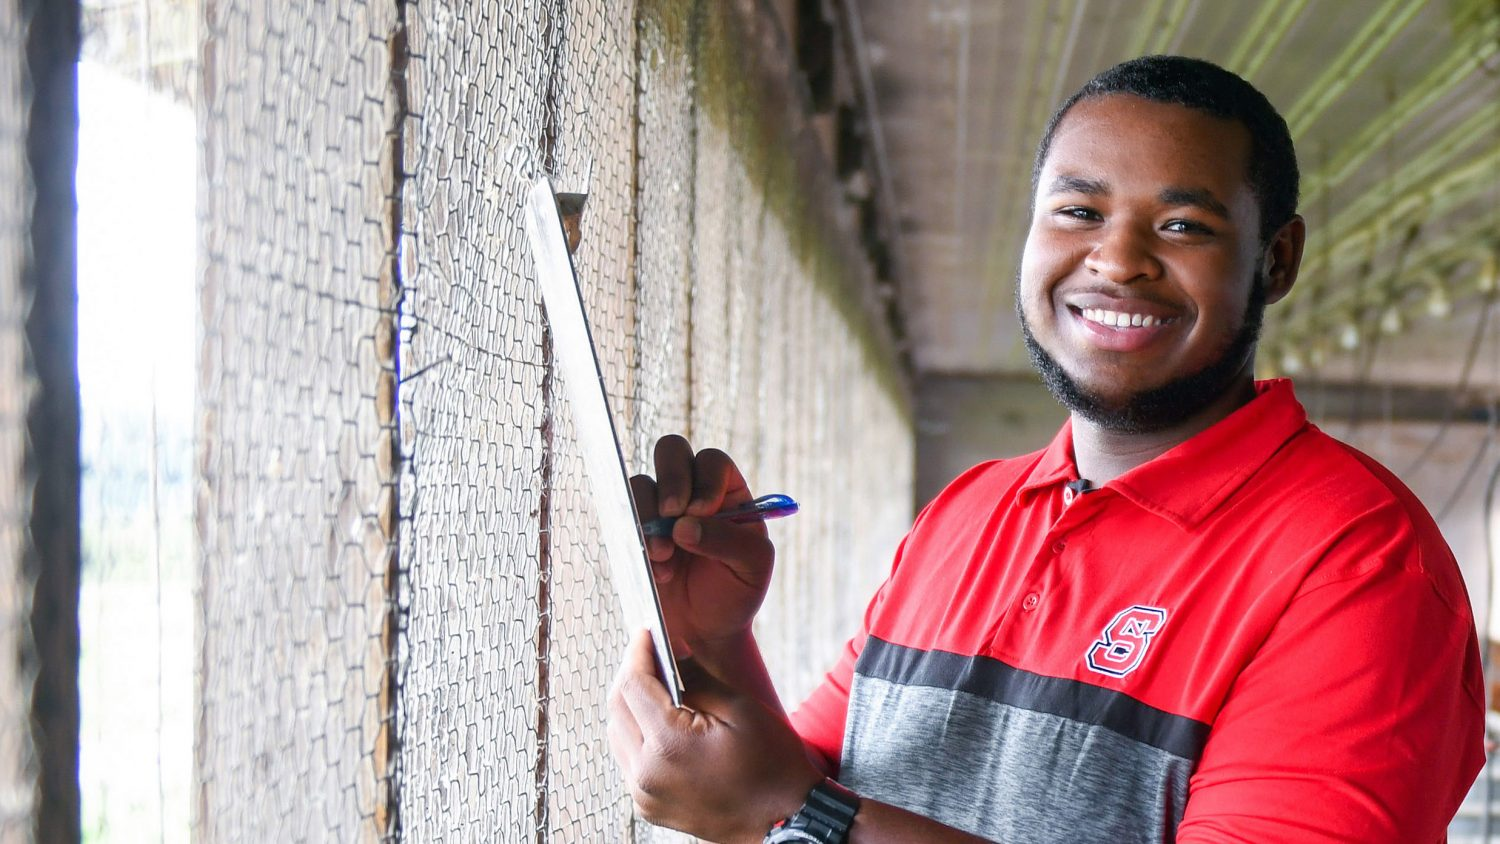 A young Black man in a poultry house wearing an NC State shirt.